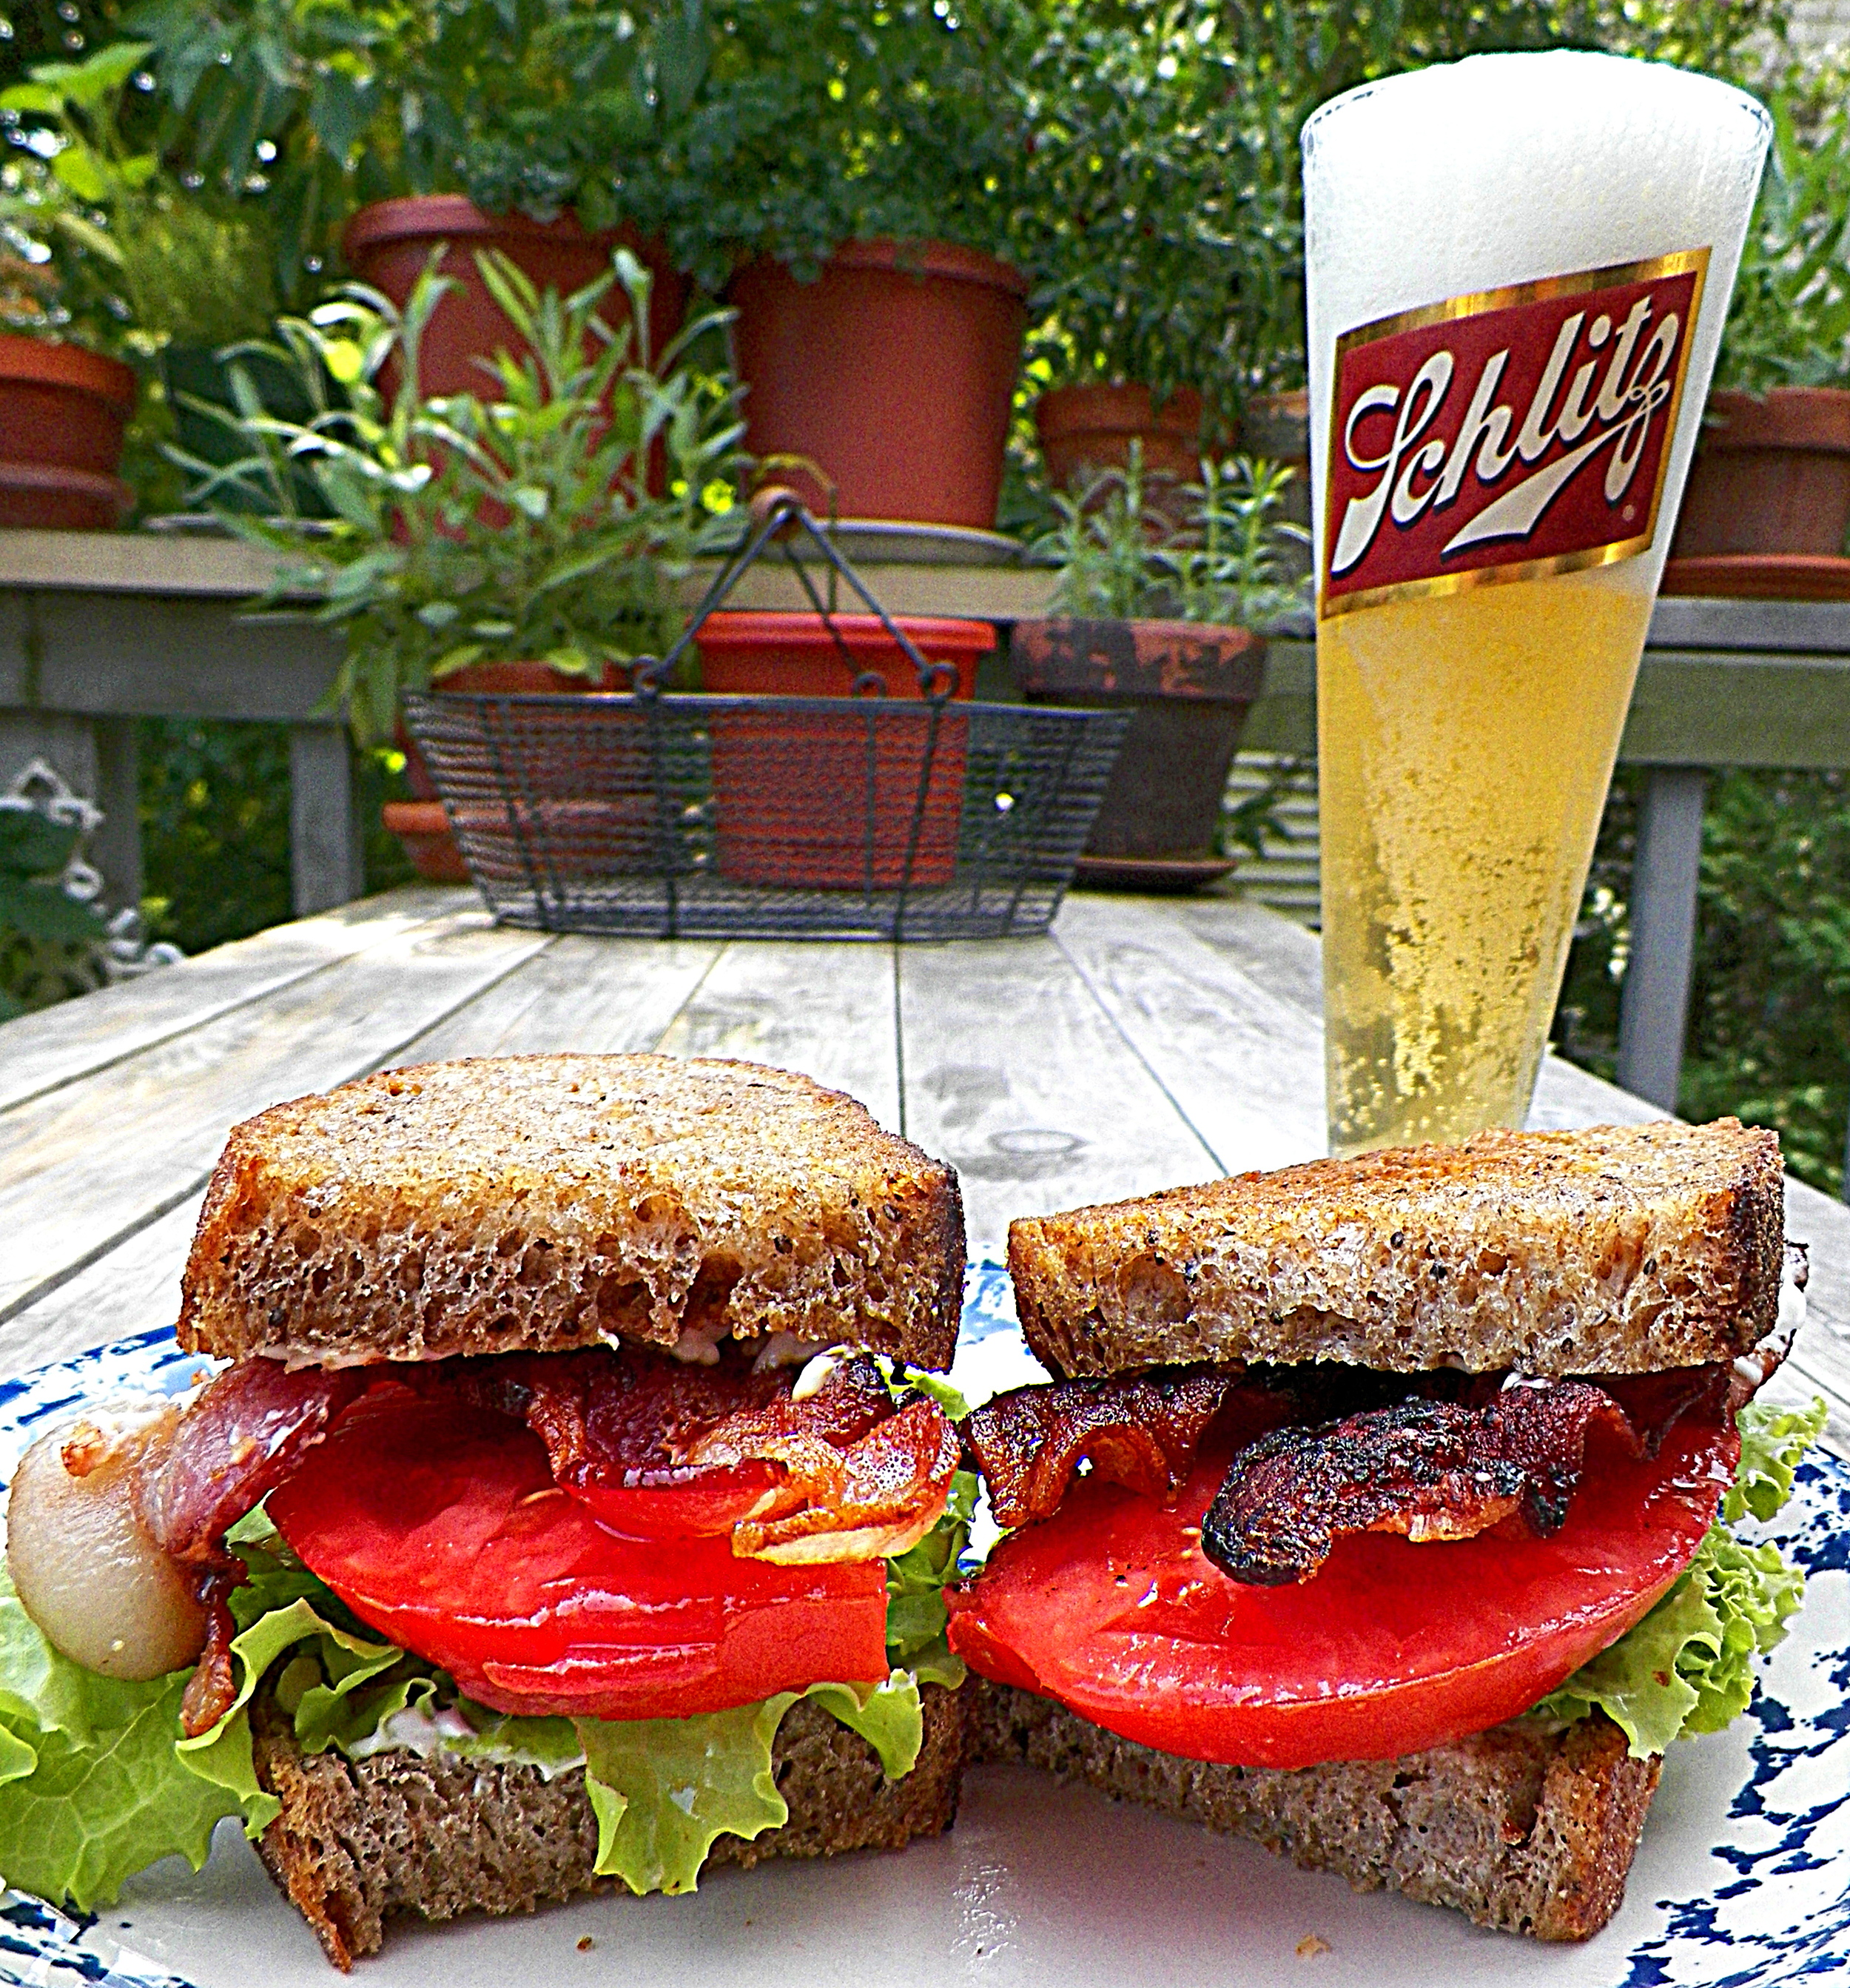 BLTs - everything grown, foraged, cured, baked at home (except for the beer!)